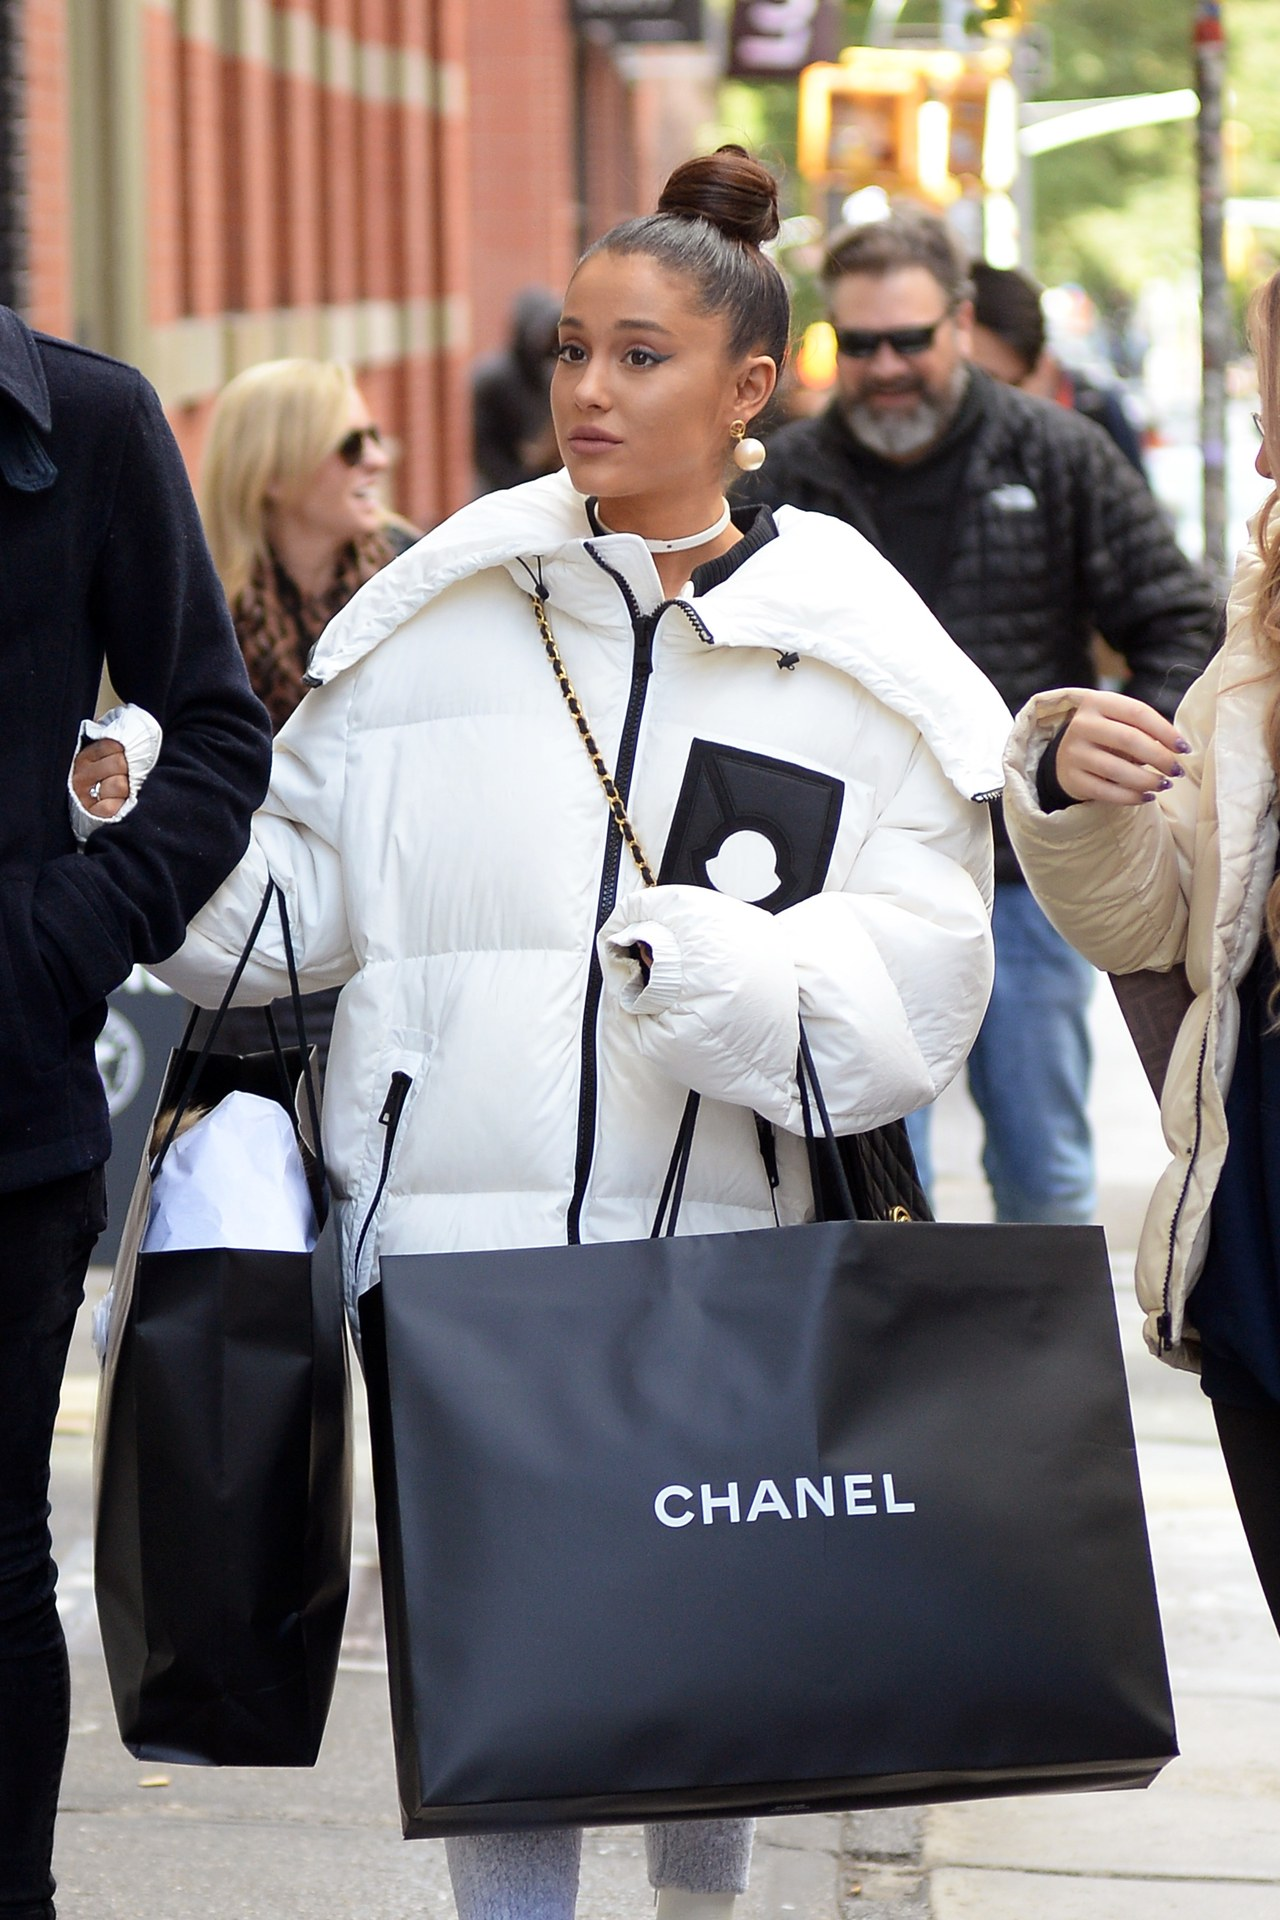 EXCLUSIVE: ** PREMIUM RATES APPLY ** Ariana Grande looking happy while out shopping at Chanel with her instagrammer friend Doug just days after the breakup with her boyfriend Pete